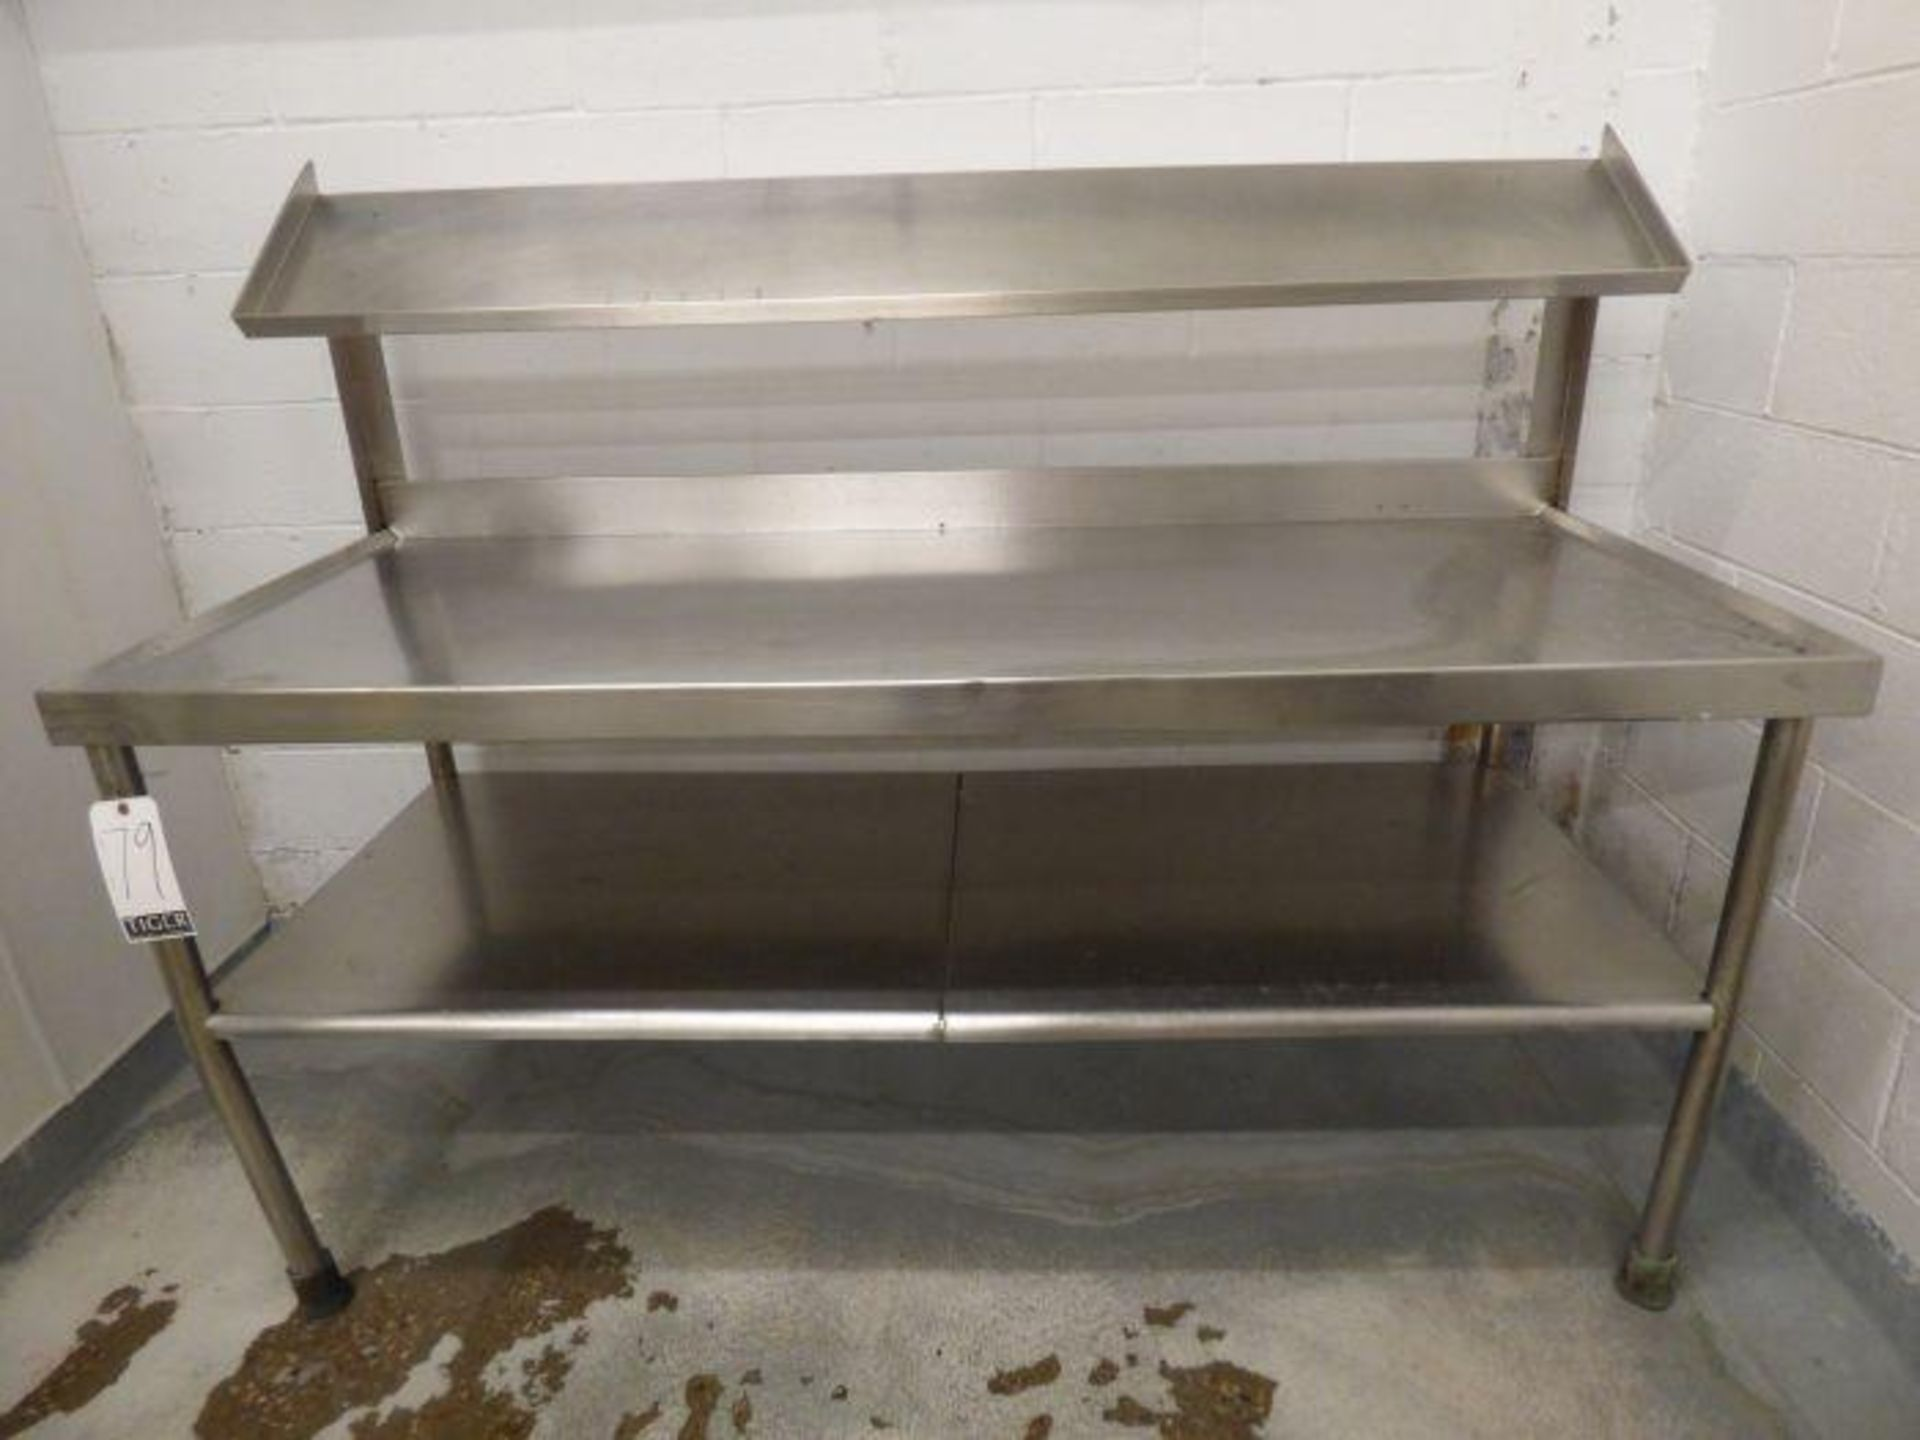 Lot 1079 - Stainless Steel Table